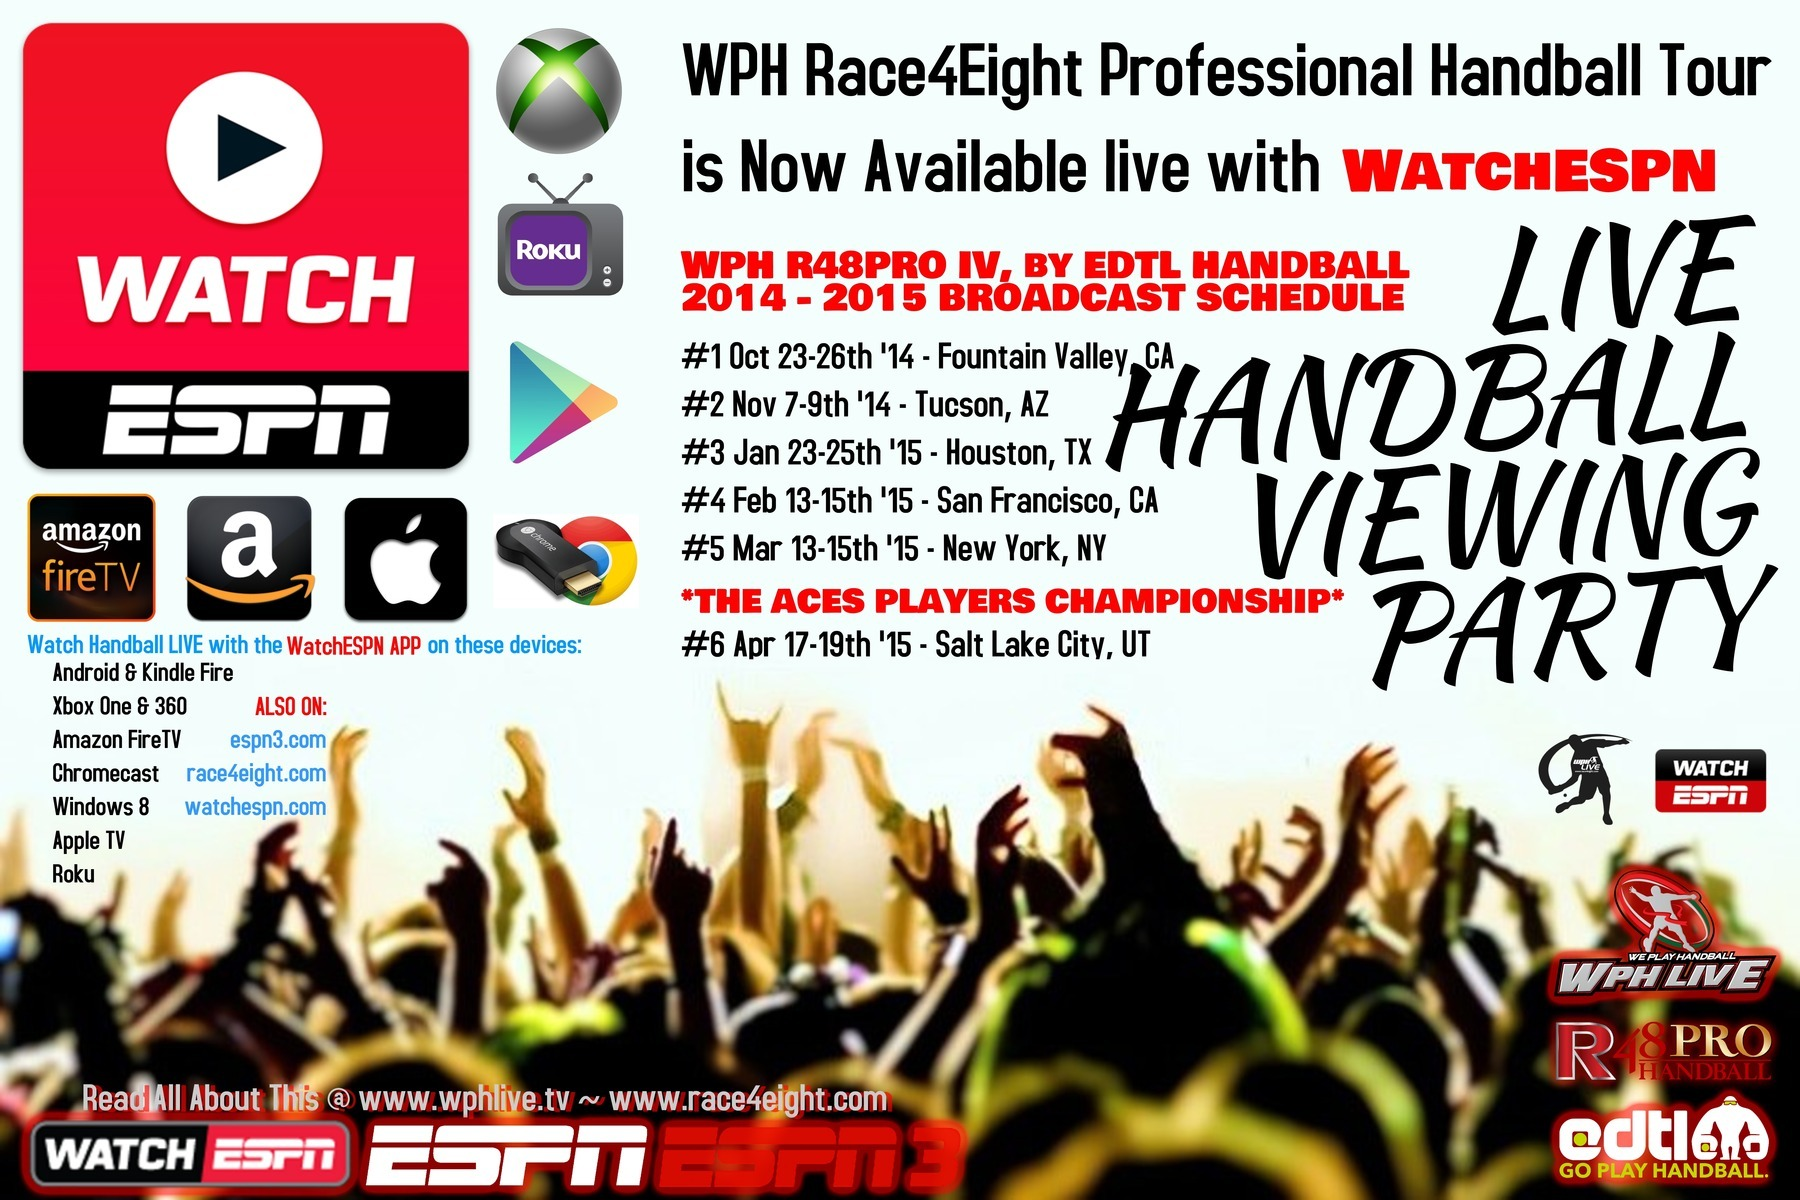 WPH R48Pro This Weekend in Houston – Watch Live on ESPN